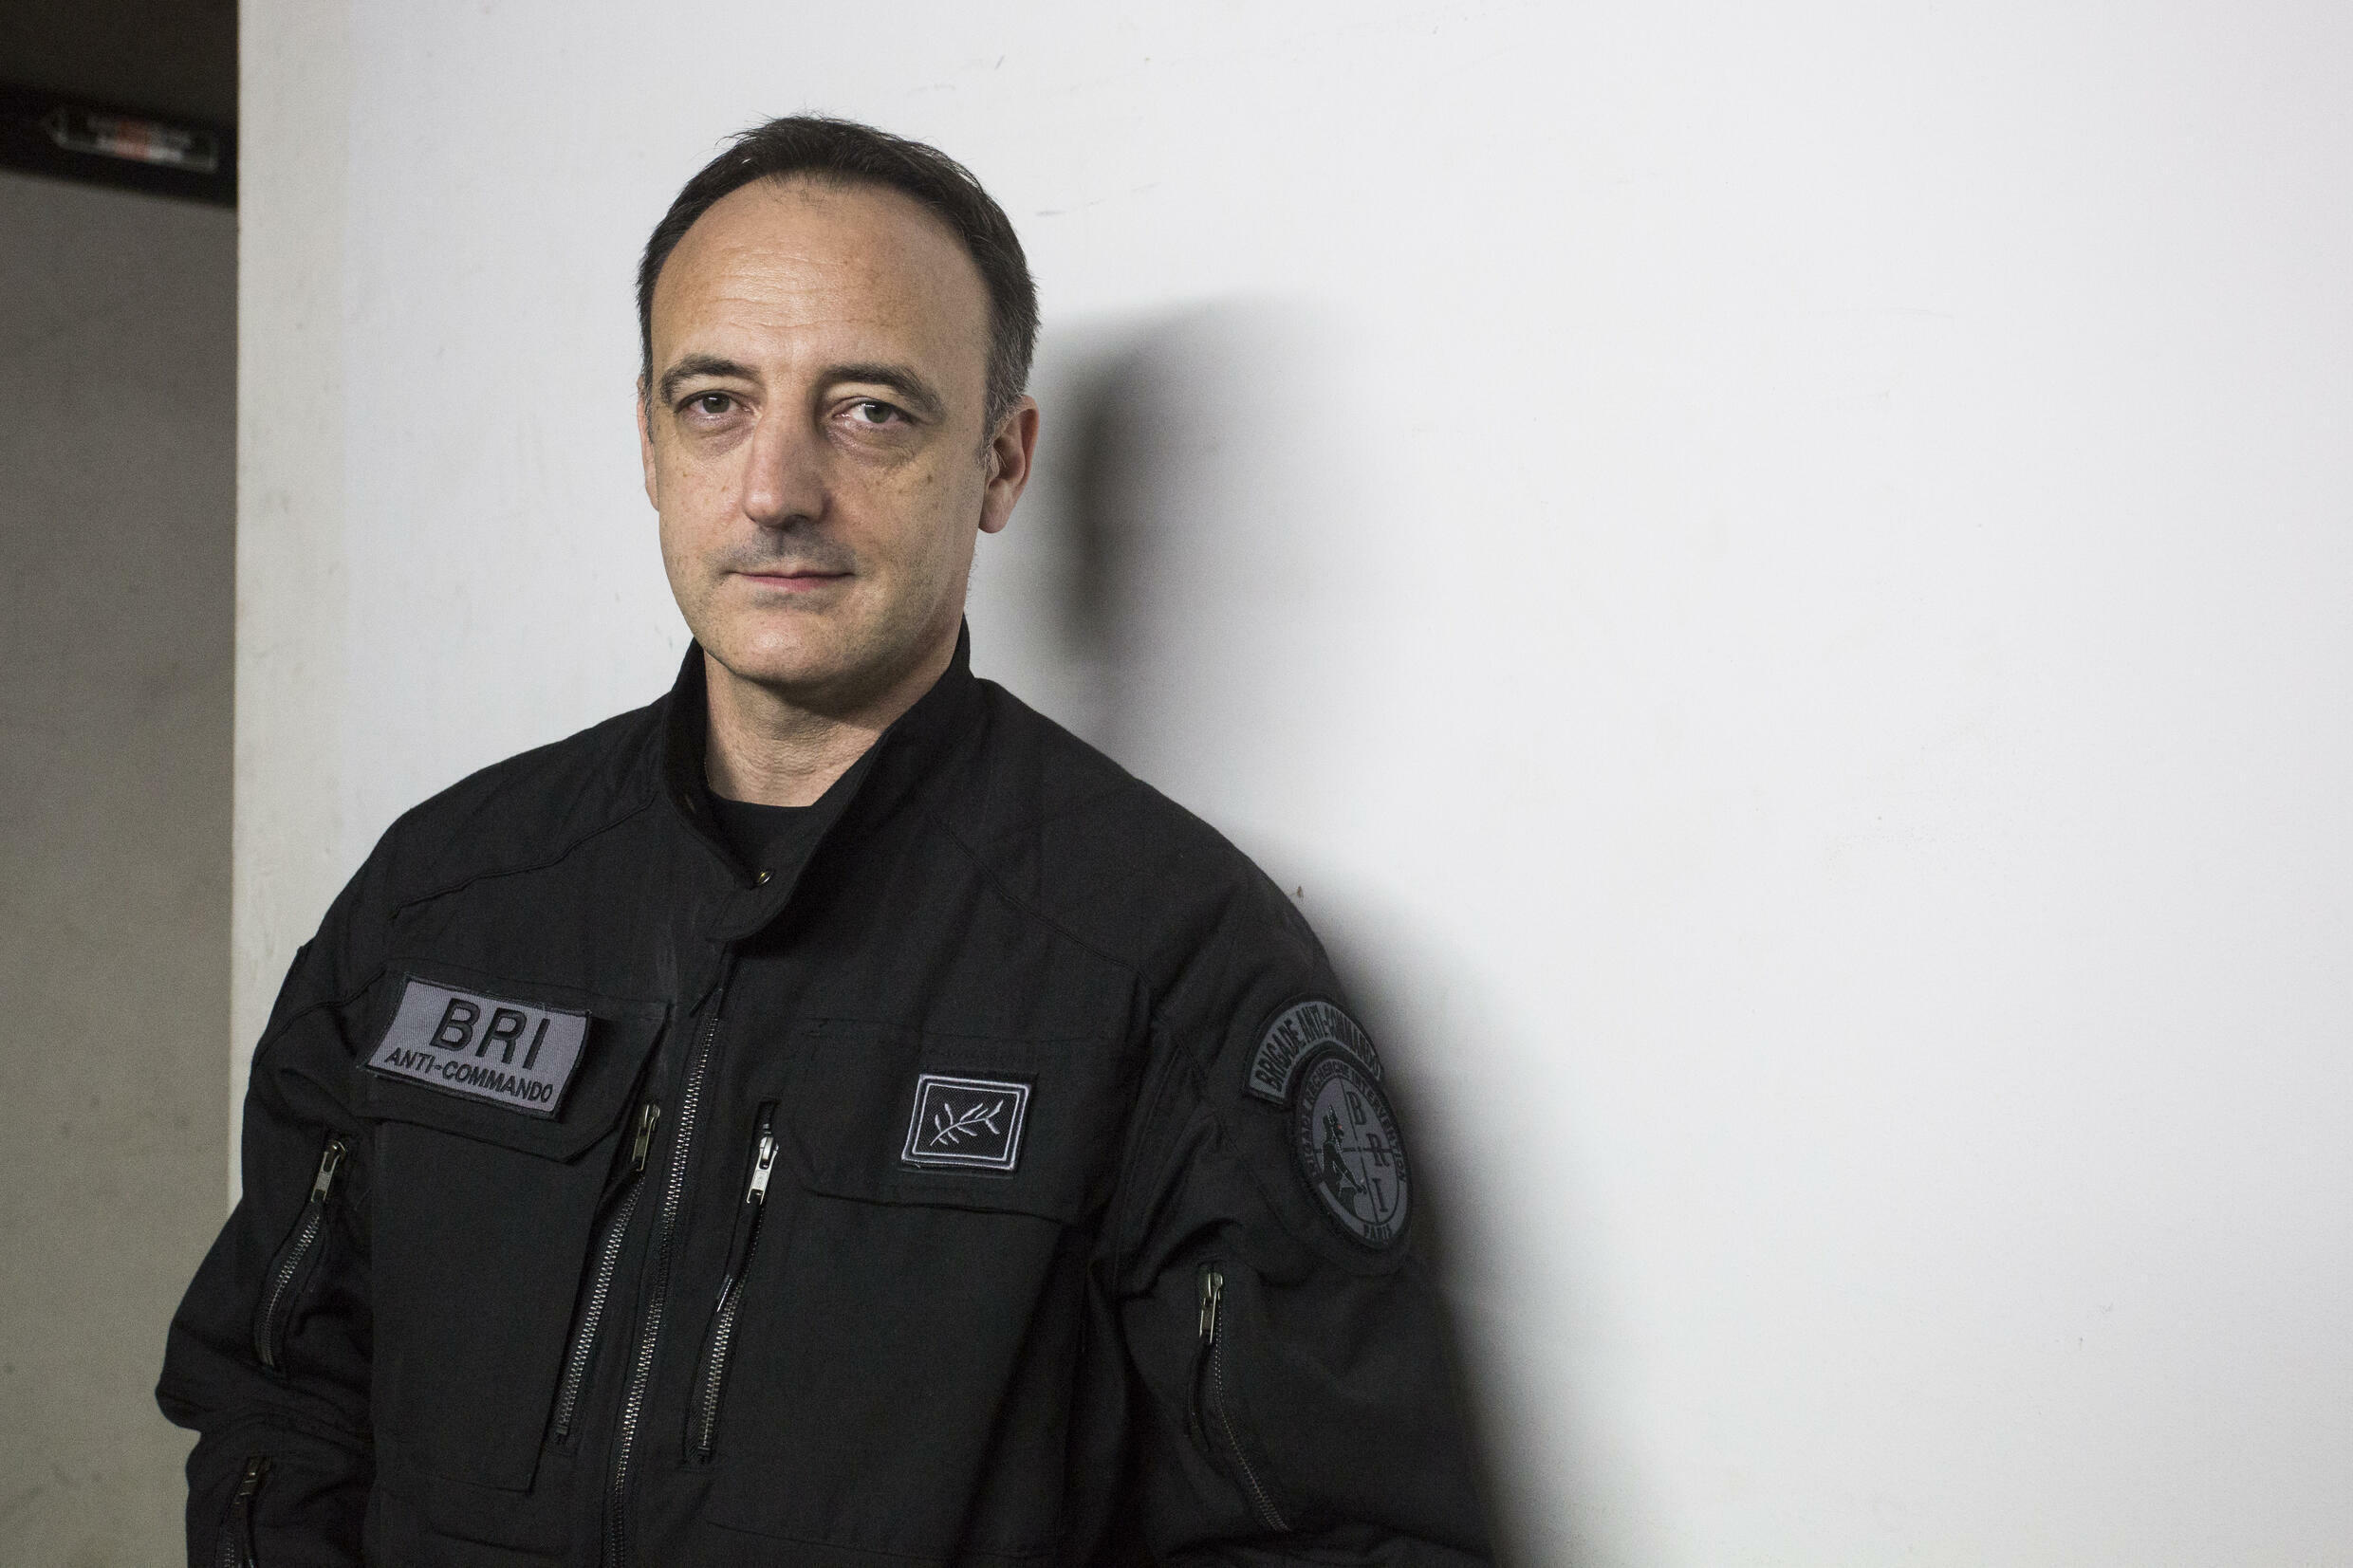 Christophe Molmy is head of the BRI police unit that stormed the Bataclan and prevented further loss of life